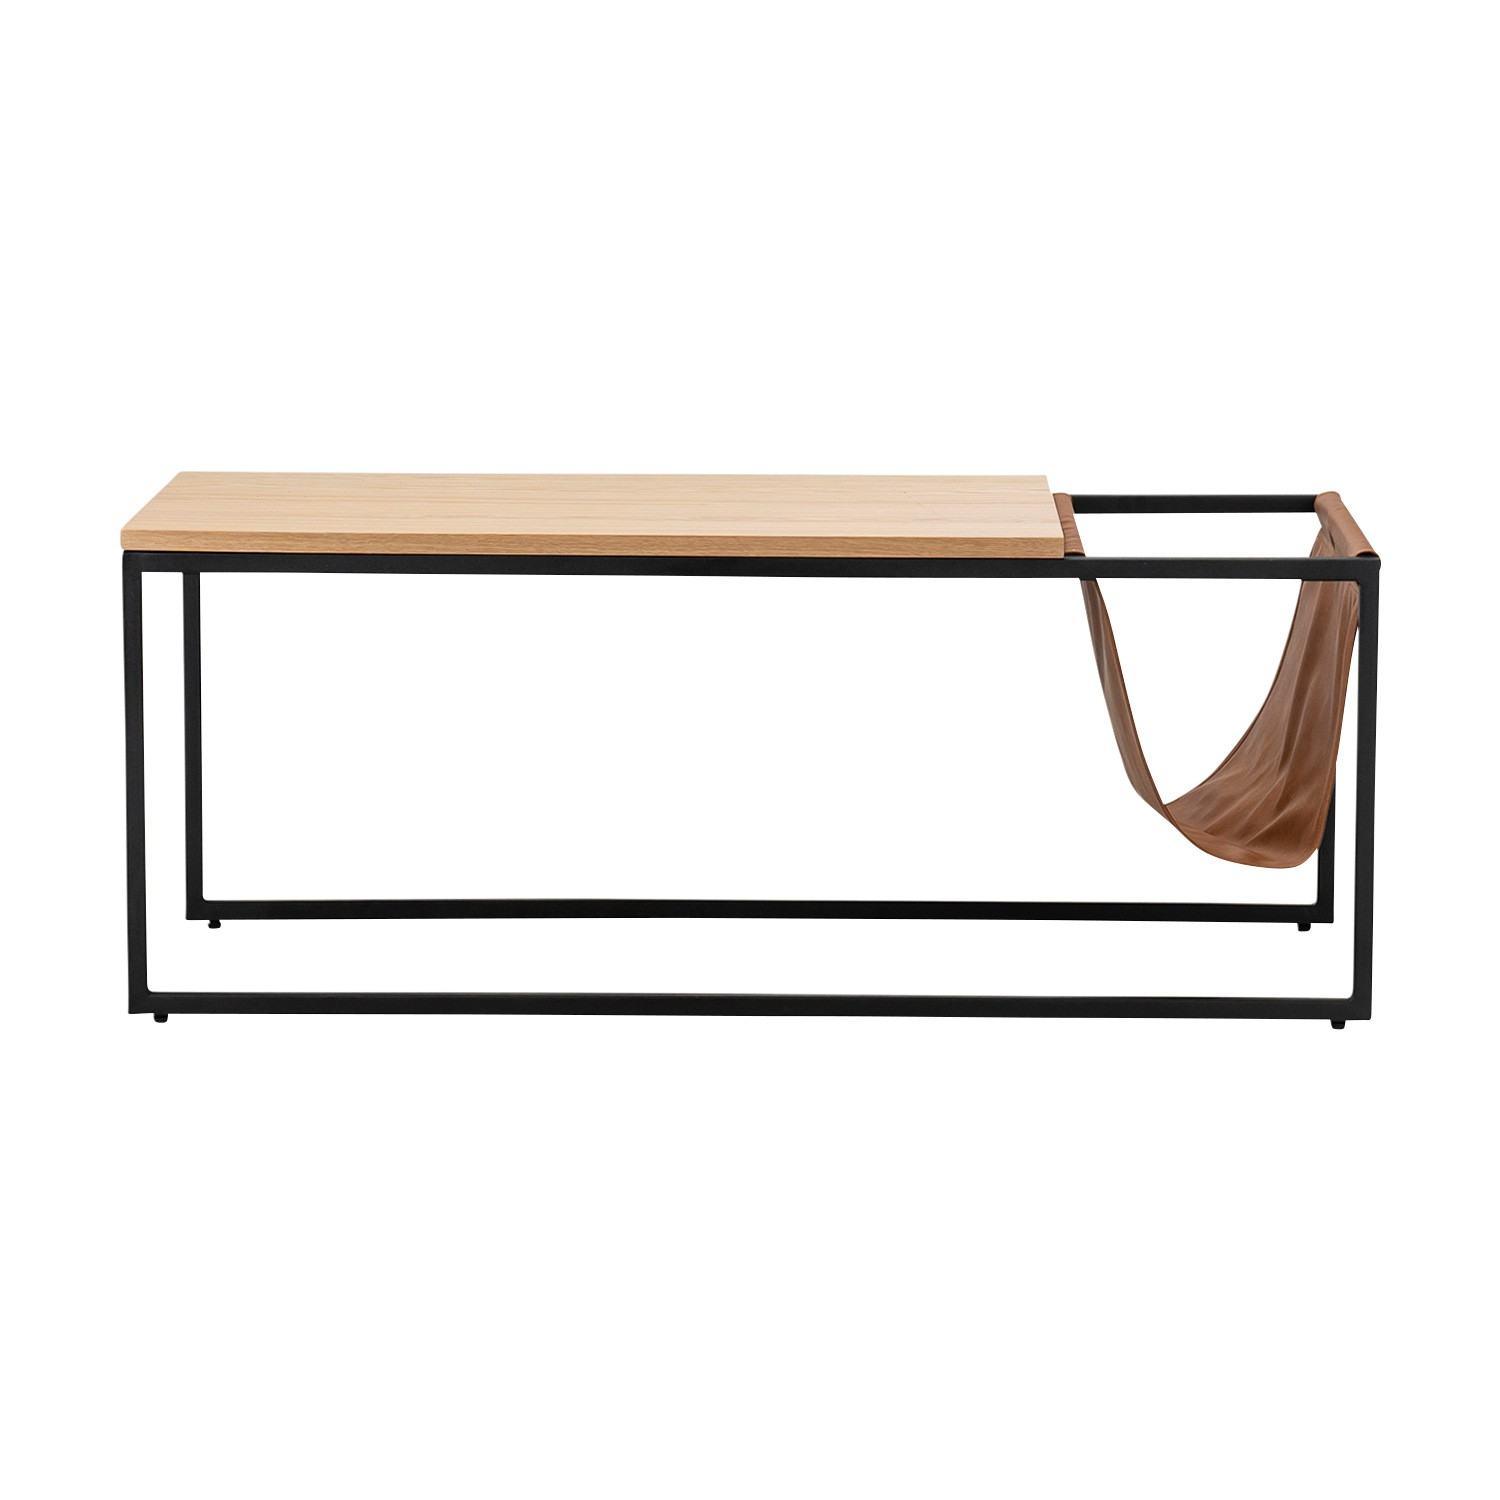 Macy Wood & Stainless Steel Coffee Table with Magazine Satchel Sling, 120cm